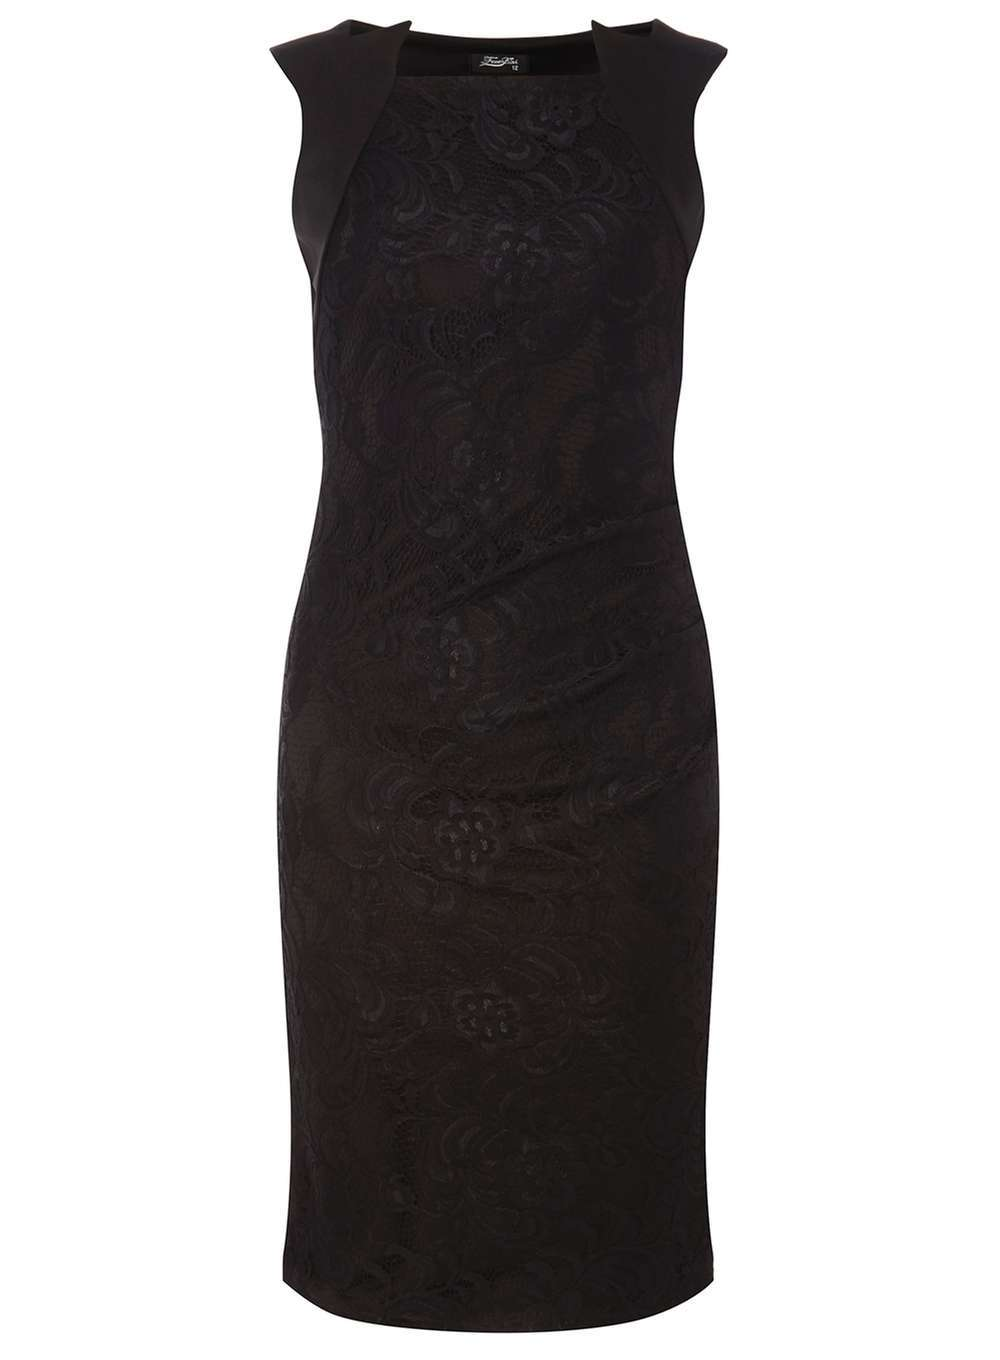 Womens **Feverfish Black Lace Pleated Dress Black - style: shift; length: below the knee; neckline: high square neck; fit: tailored/fitted; pattern: plain; sleeve style: sleeveless; predominant colour: black; occasions: evening; fibres: polyester/polyamide - stretch; sleeve length: sleeveless; texture group: lace; pattern type: fabric; season: a/w 2016; wardrobe: event